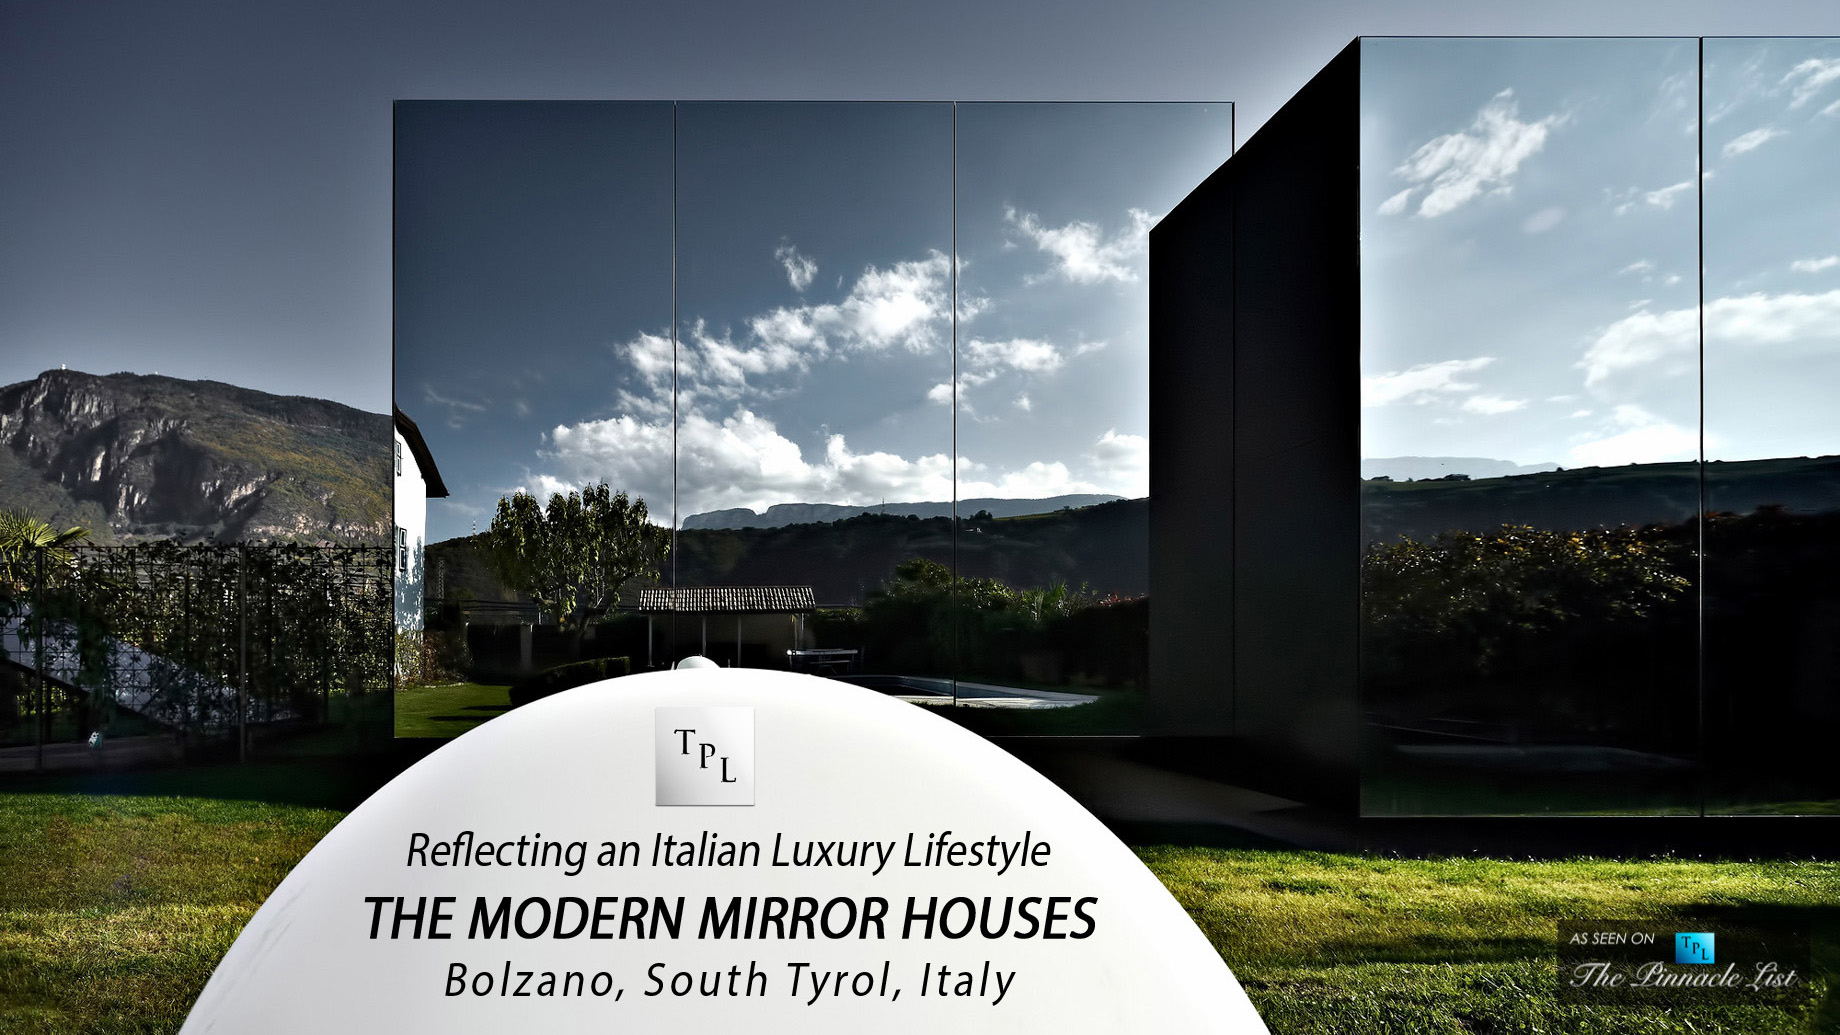 Reflecting an Italian Luxury Lifestyle at The Modern Mirror Houses in South Tyrol